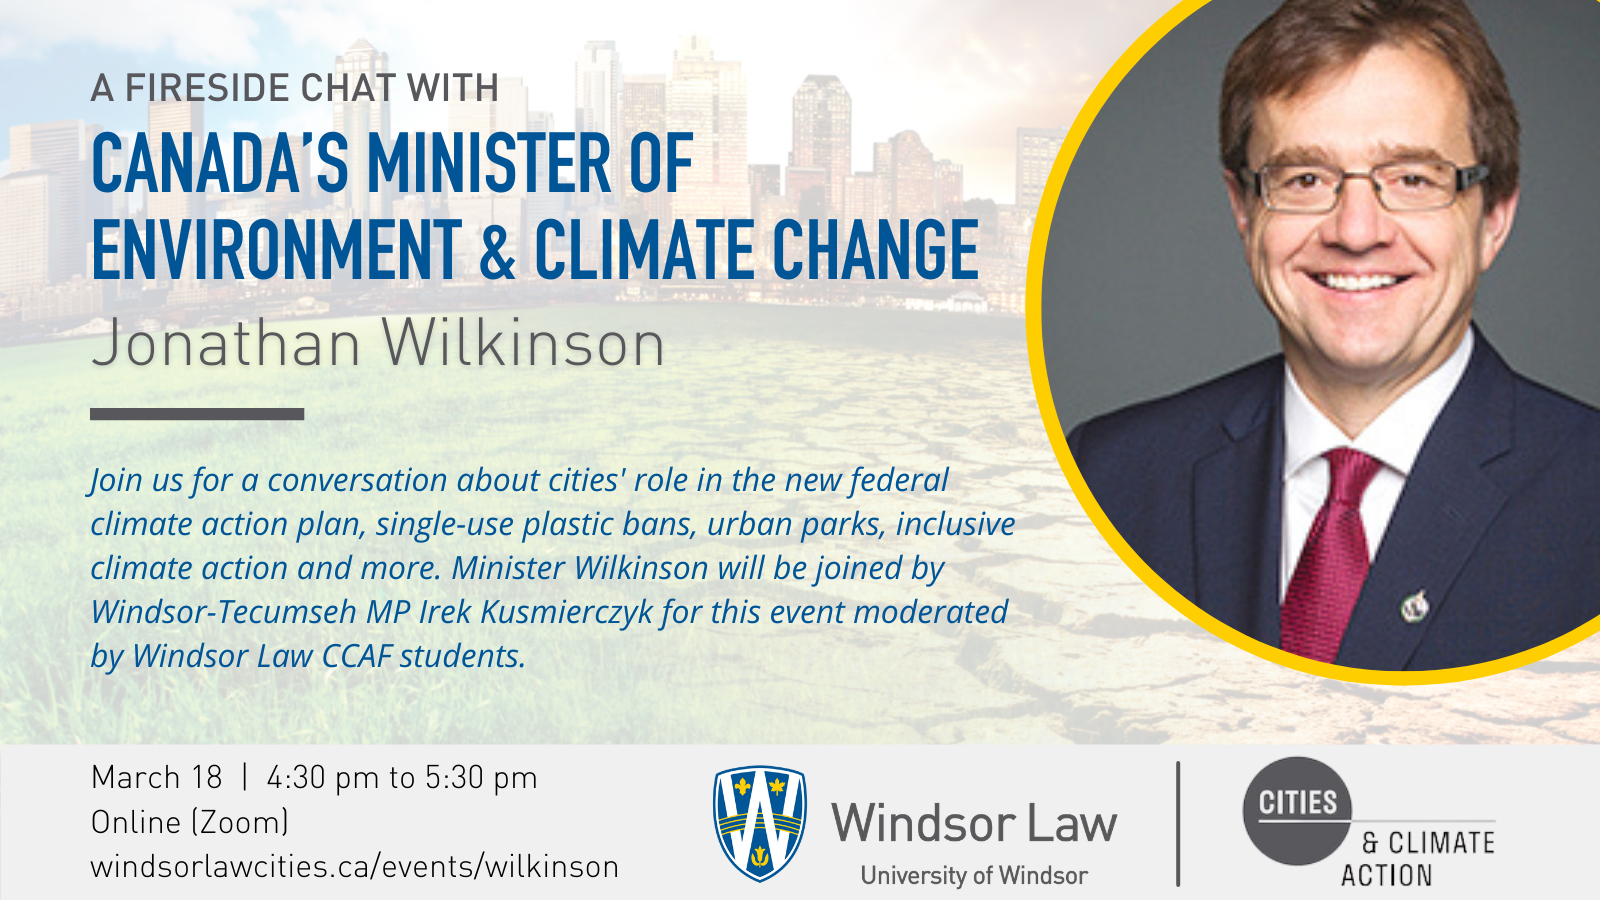 CCAF Presents: A Fireside Chat with Canada's Minister of Environment and Climate Change